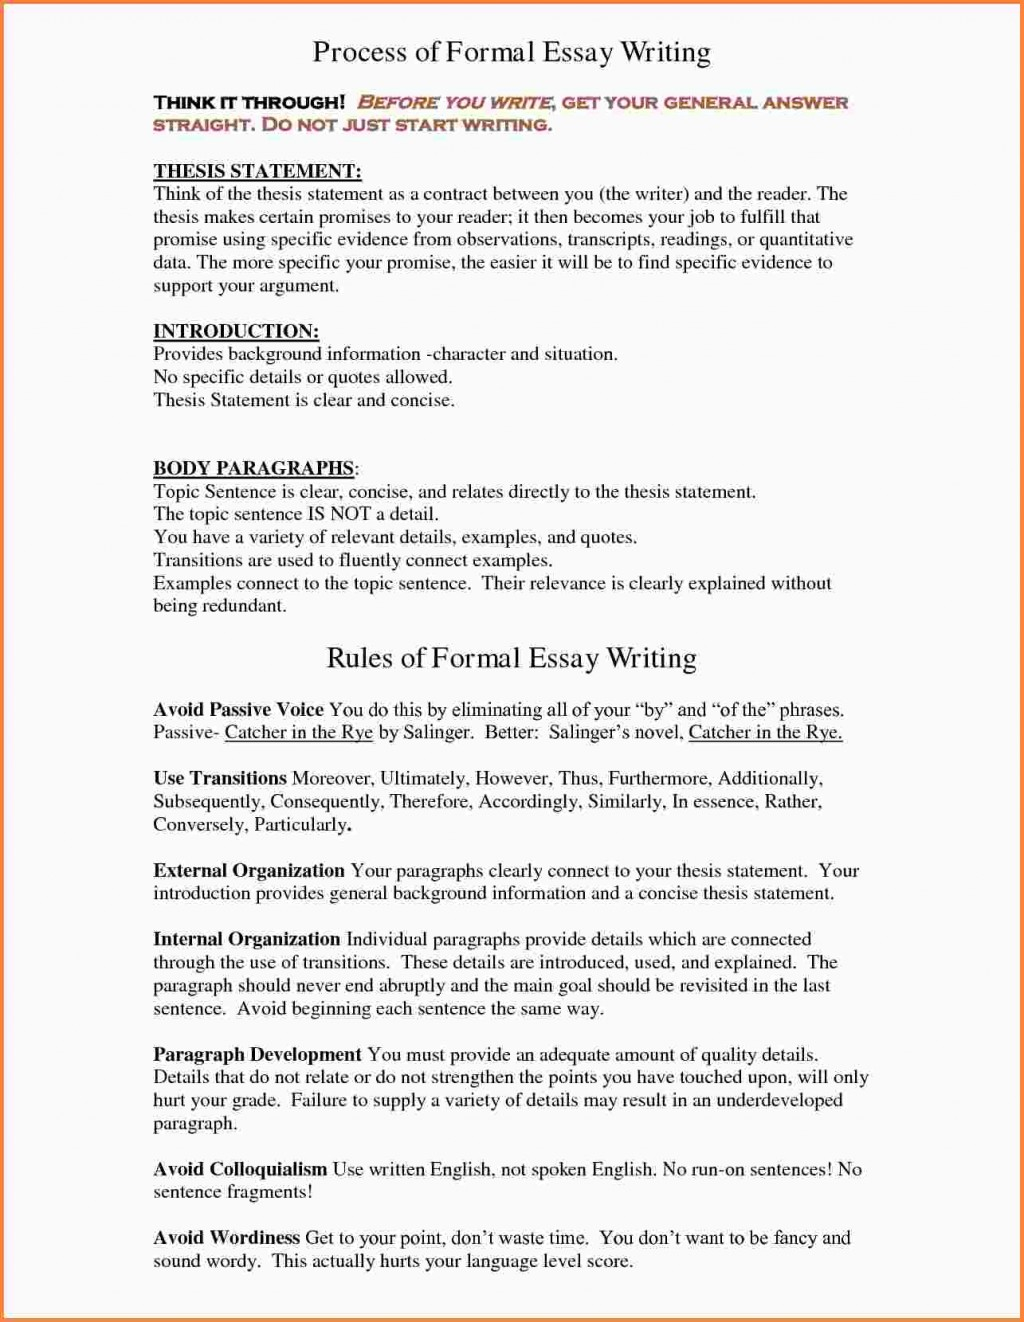 015 How To Write Research Paper Fast Paragraph Development Examples Essay Template Of Writing In English College Service Collection Solutions Papers Essays Breathtaking A Youtube Faster Large